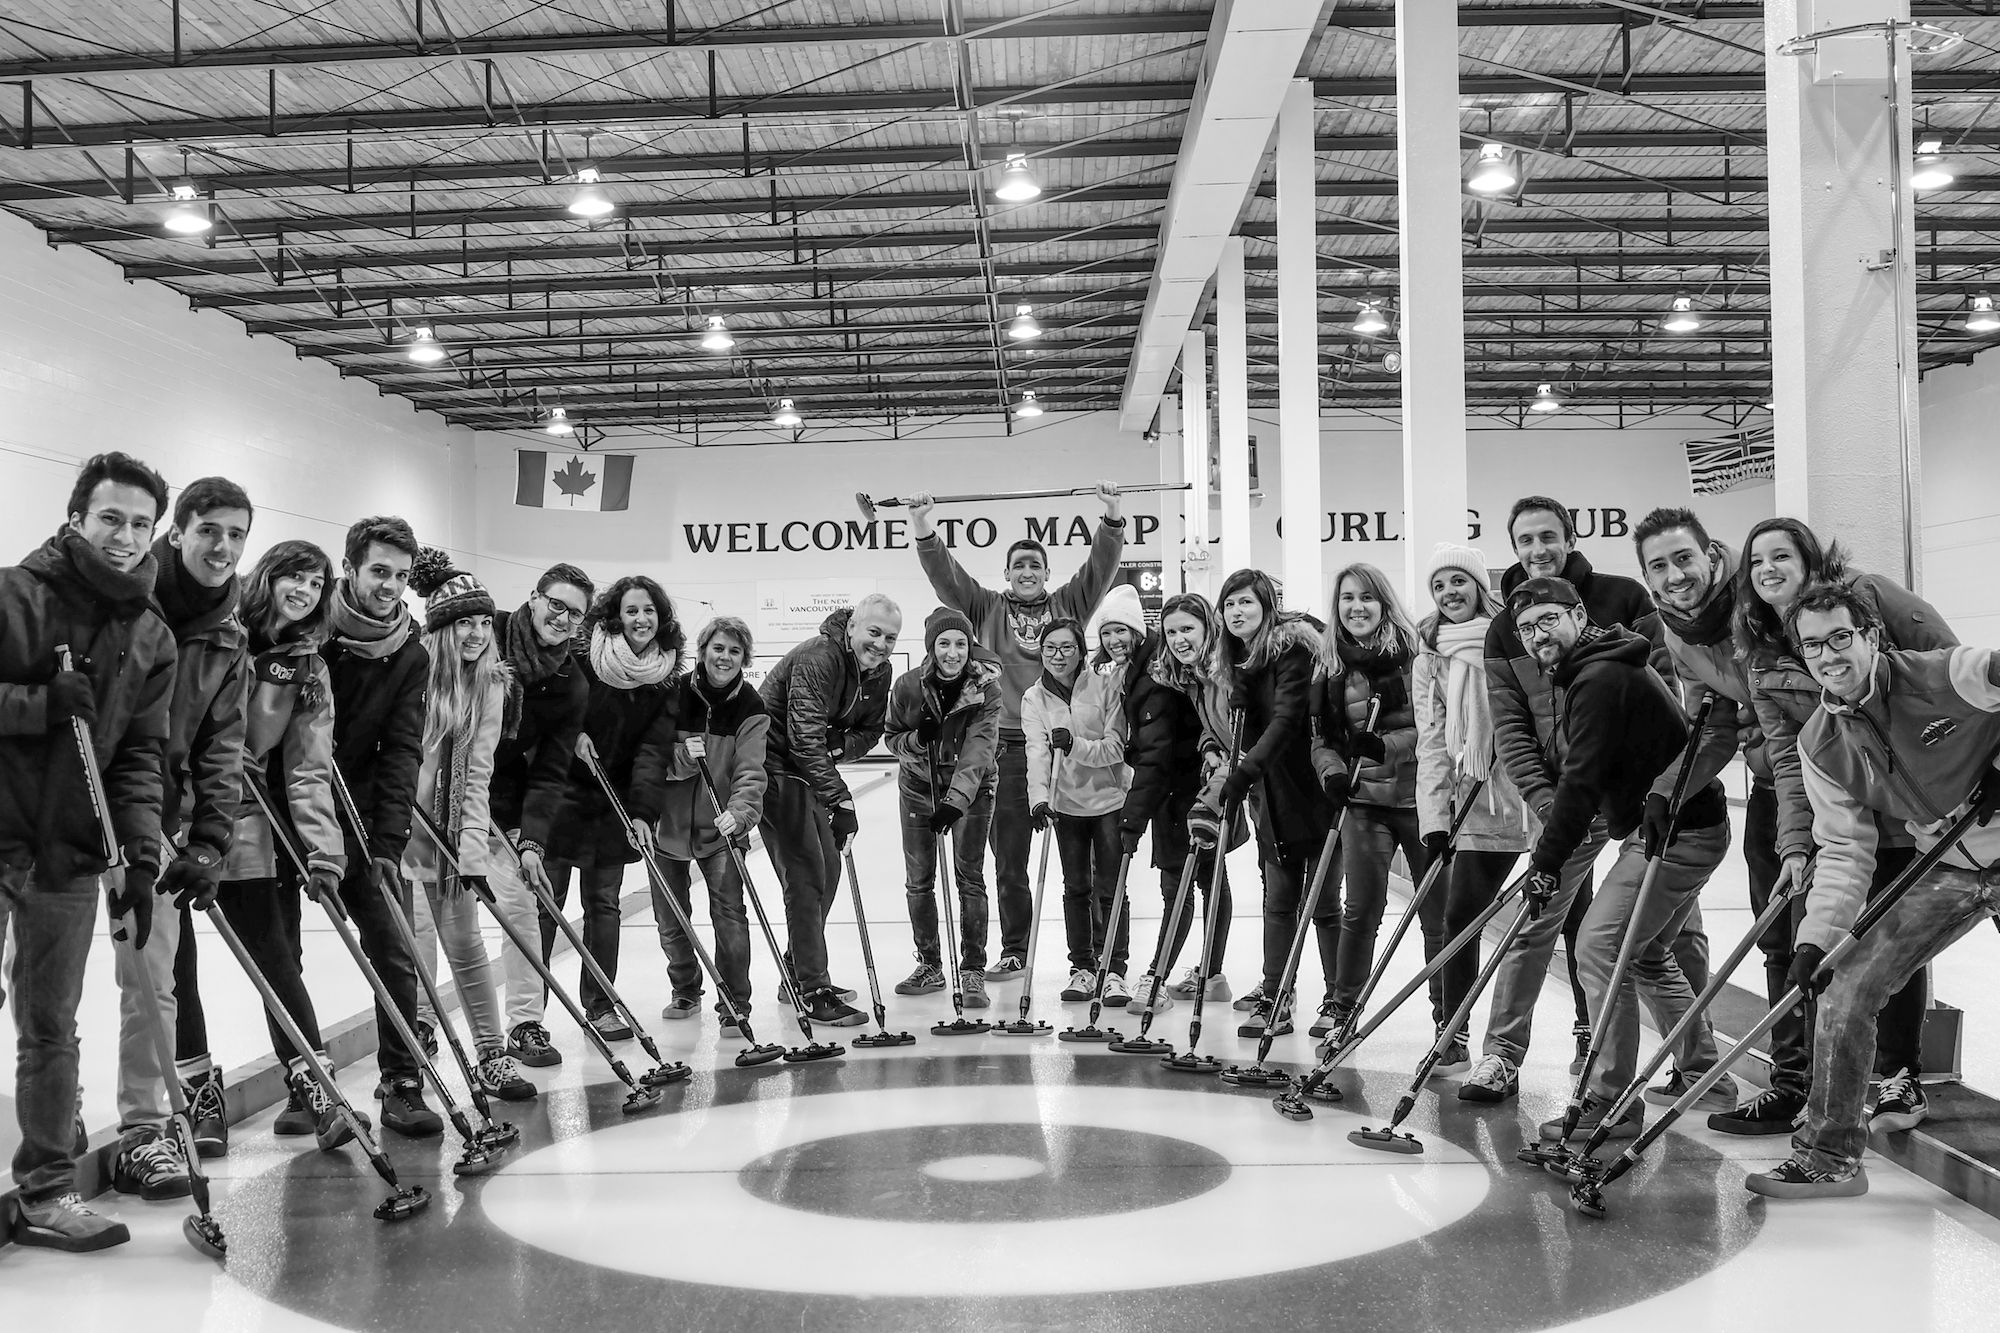 BC Talents - Team building at Curling facility - Marpole curling